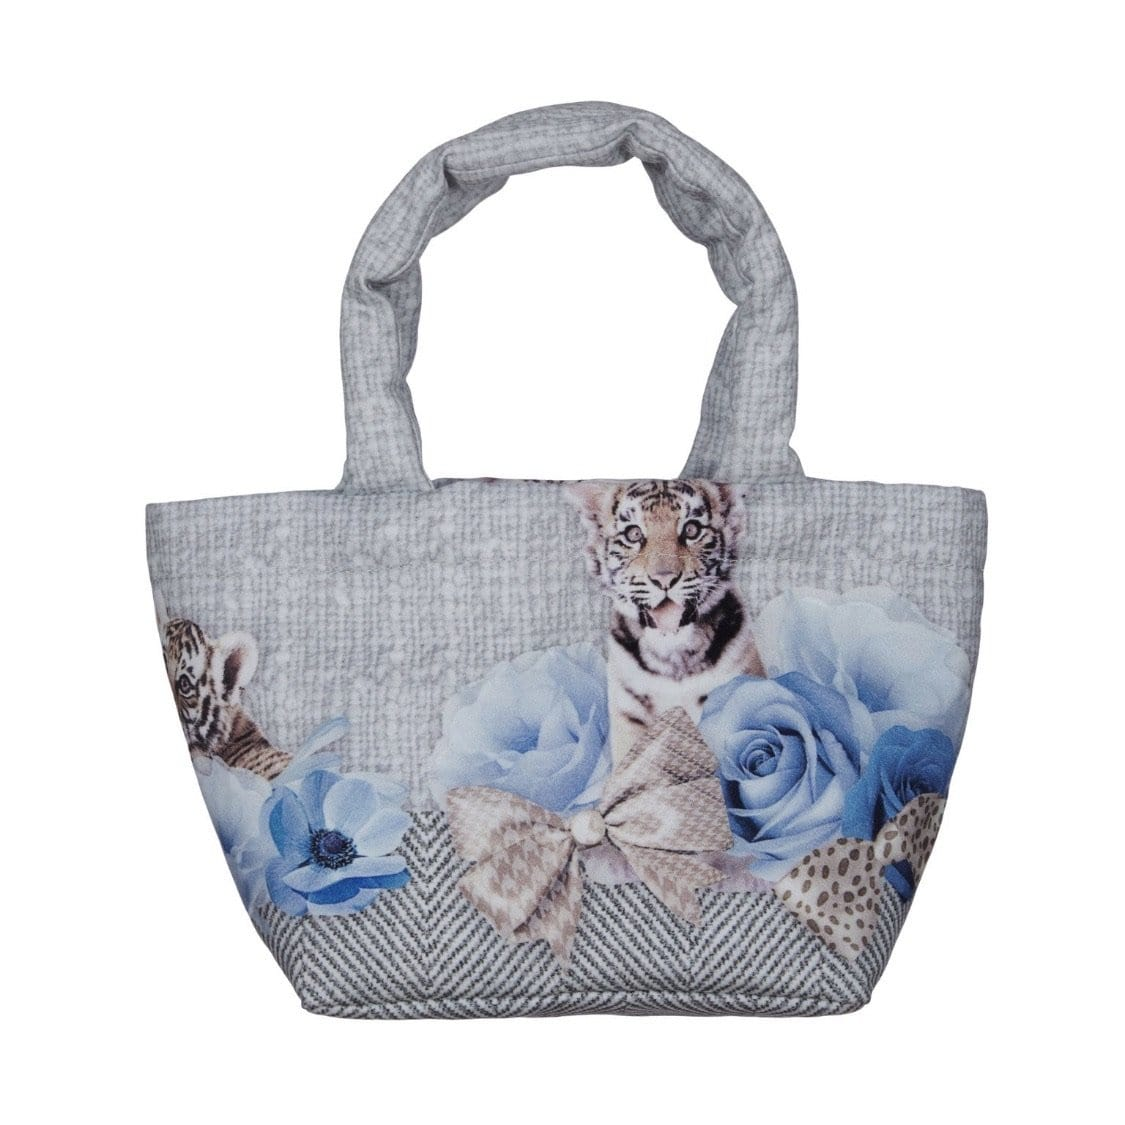 PRE ORDER LAPIN HOUSE BLUE ROSE LEOPARD BAG